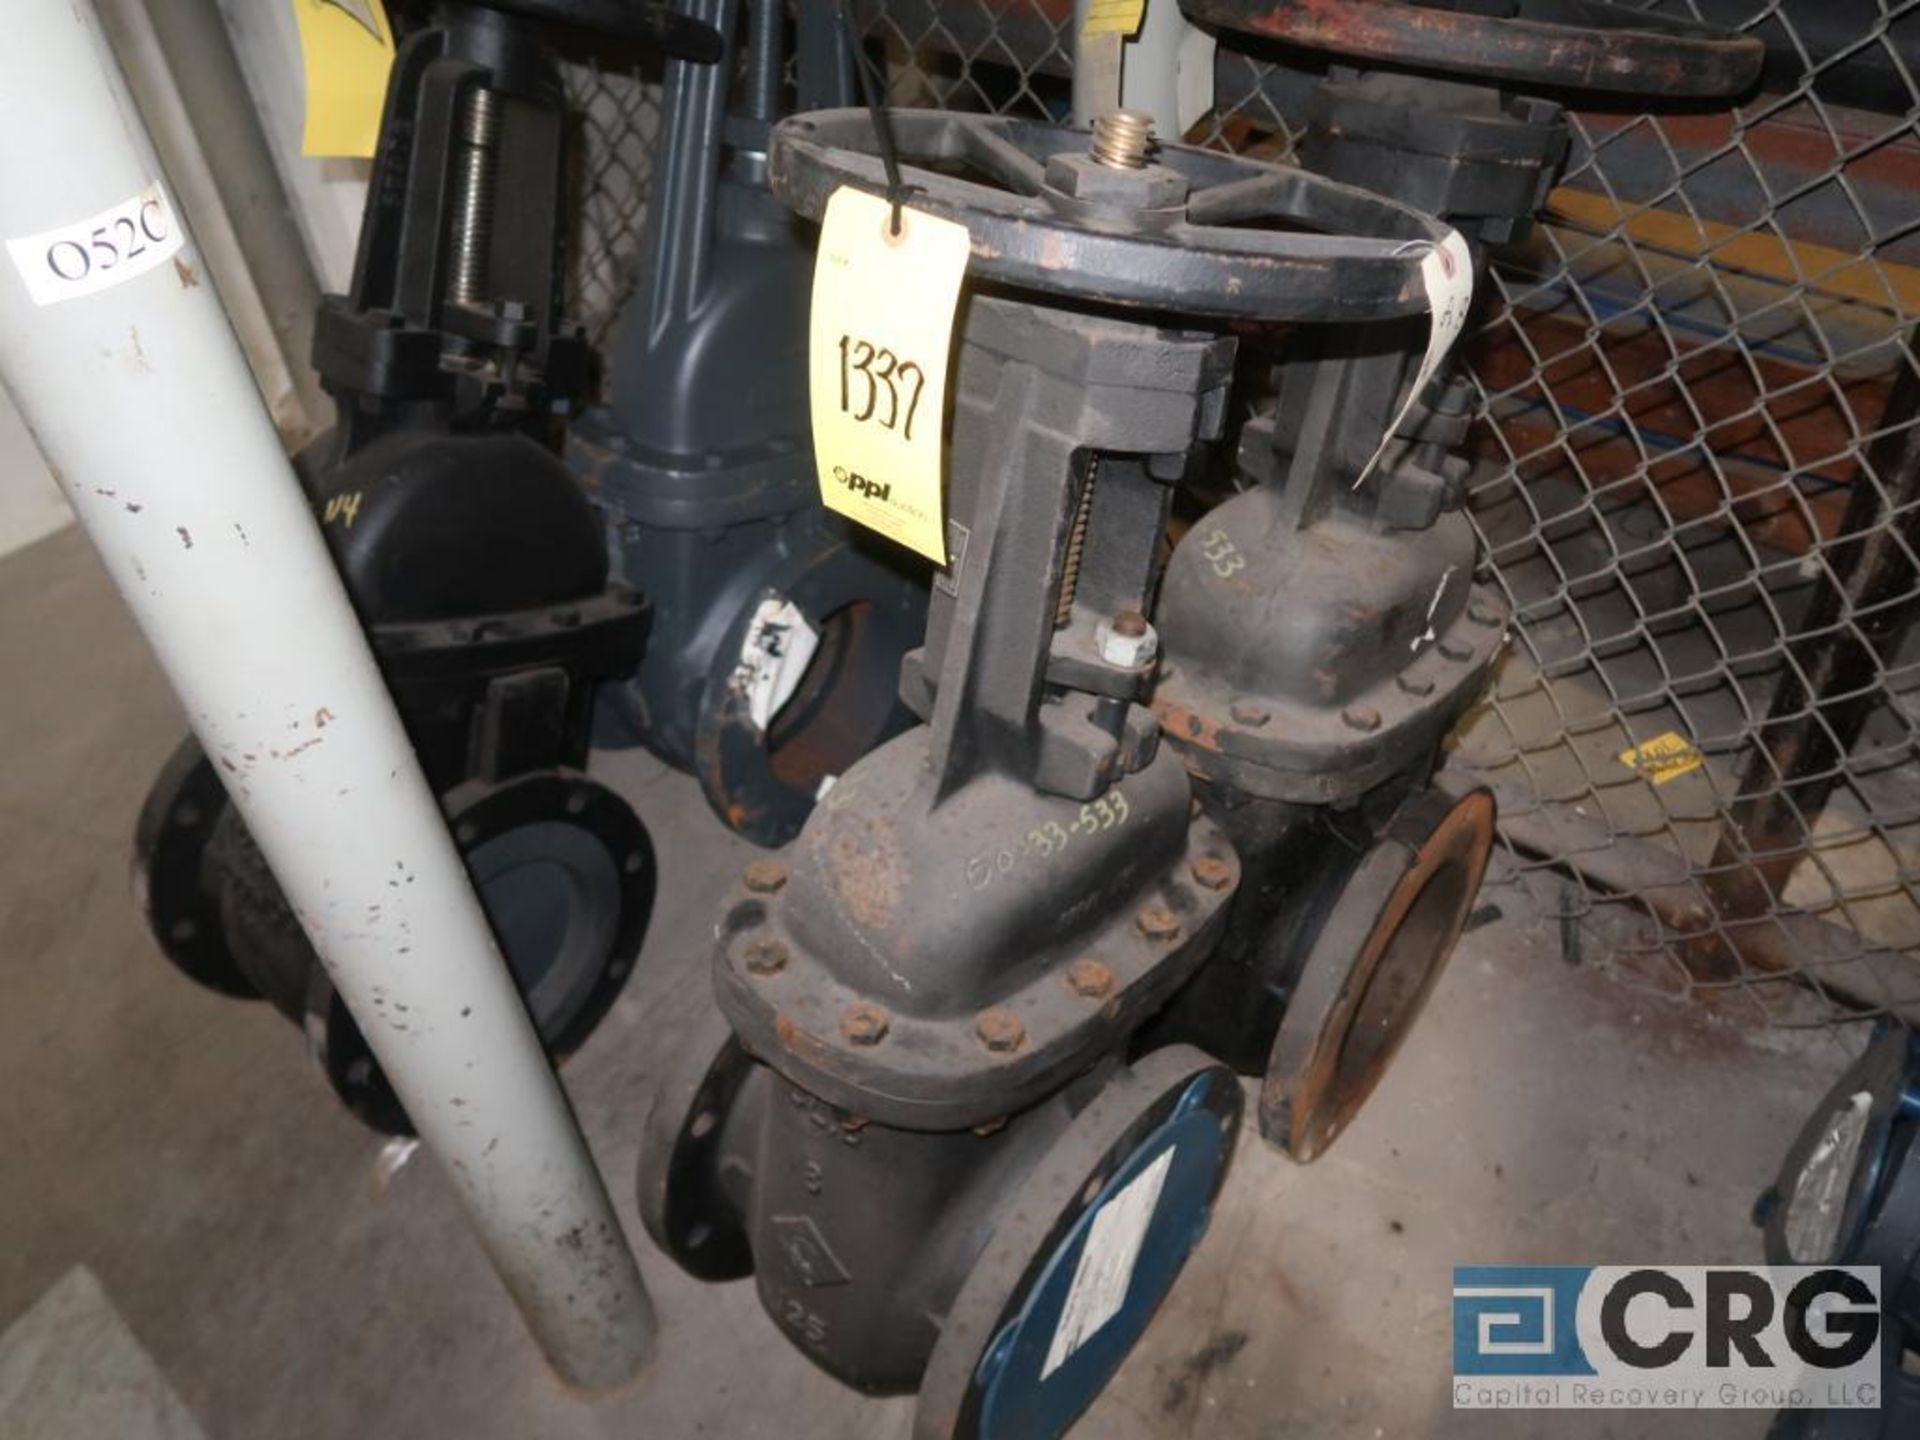 Lot of (7) ball valves, (4) 8 in., (1) 12 in., and (2) 6 in. (Store Basement) - Image 3 of 3